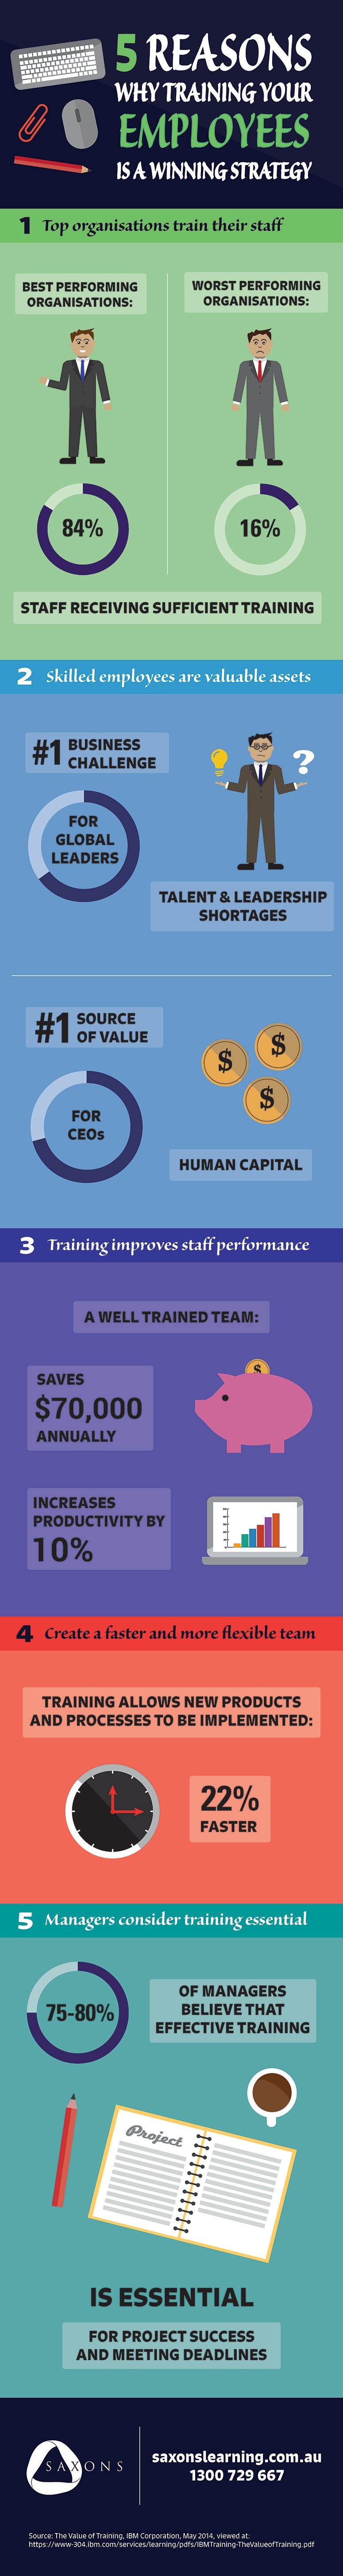 5 Reasons Why Training Your Staff is A Winning Strategy Infographic